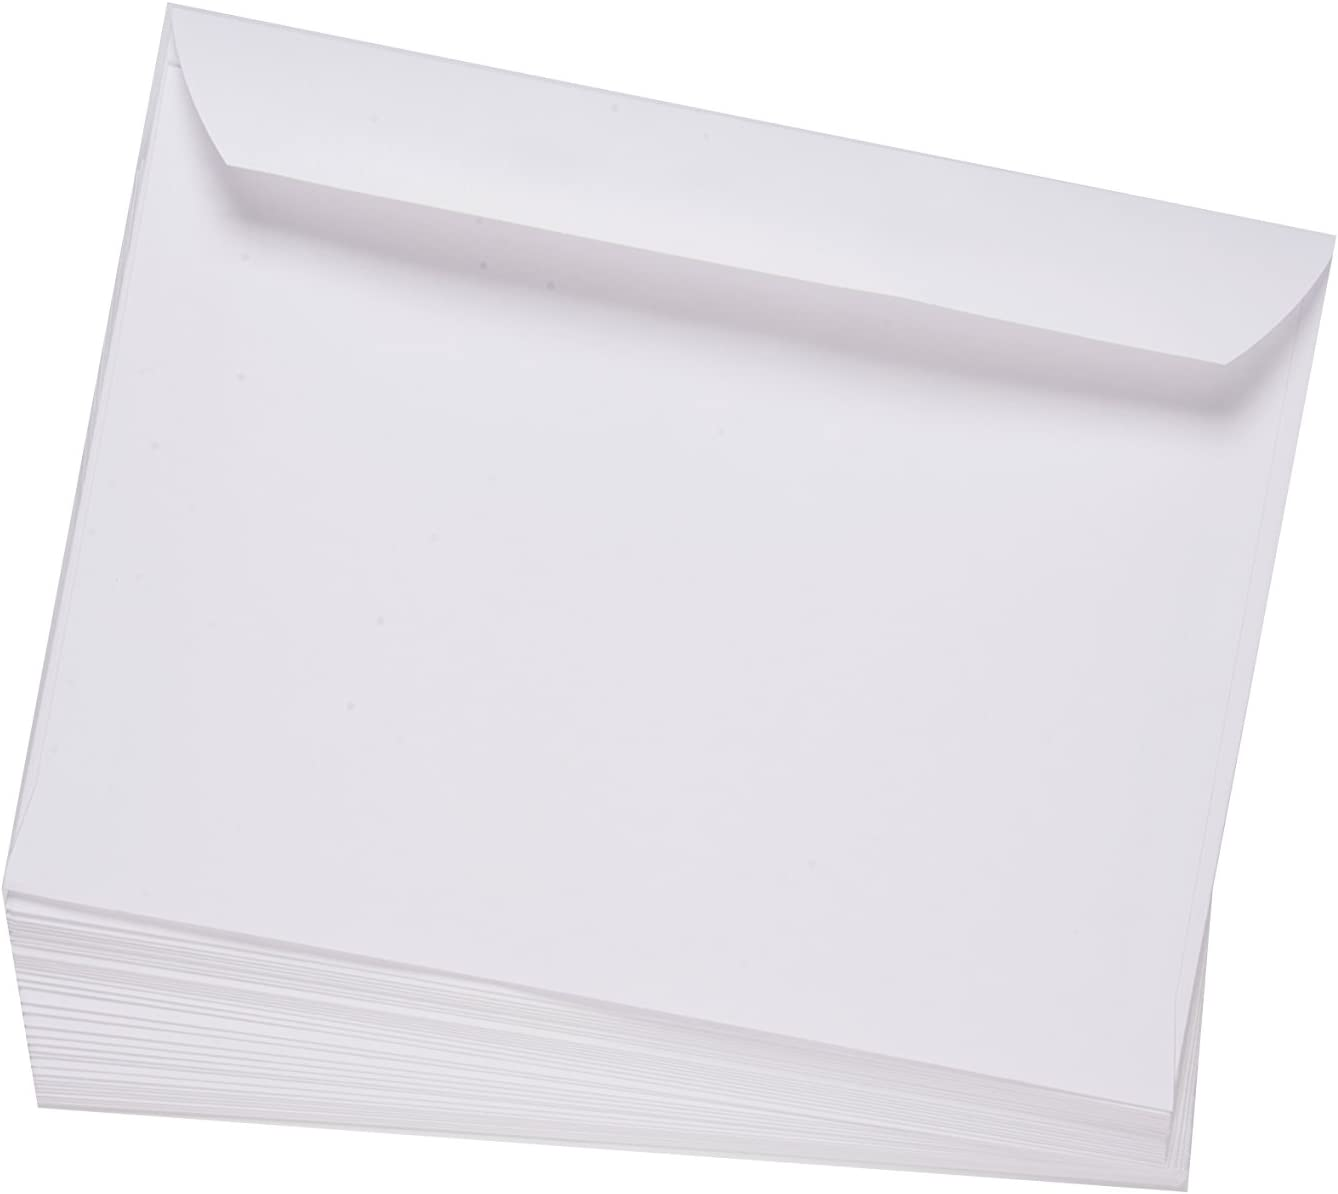 EnDoc 6x9 Open Side Envelopes - Bright White color Booklet 6 x 9 Gummed Seal Envelope, 24lb. Heavyweight Paper For Home, Office, Business or School - 50 Pack : Office Products